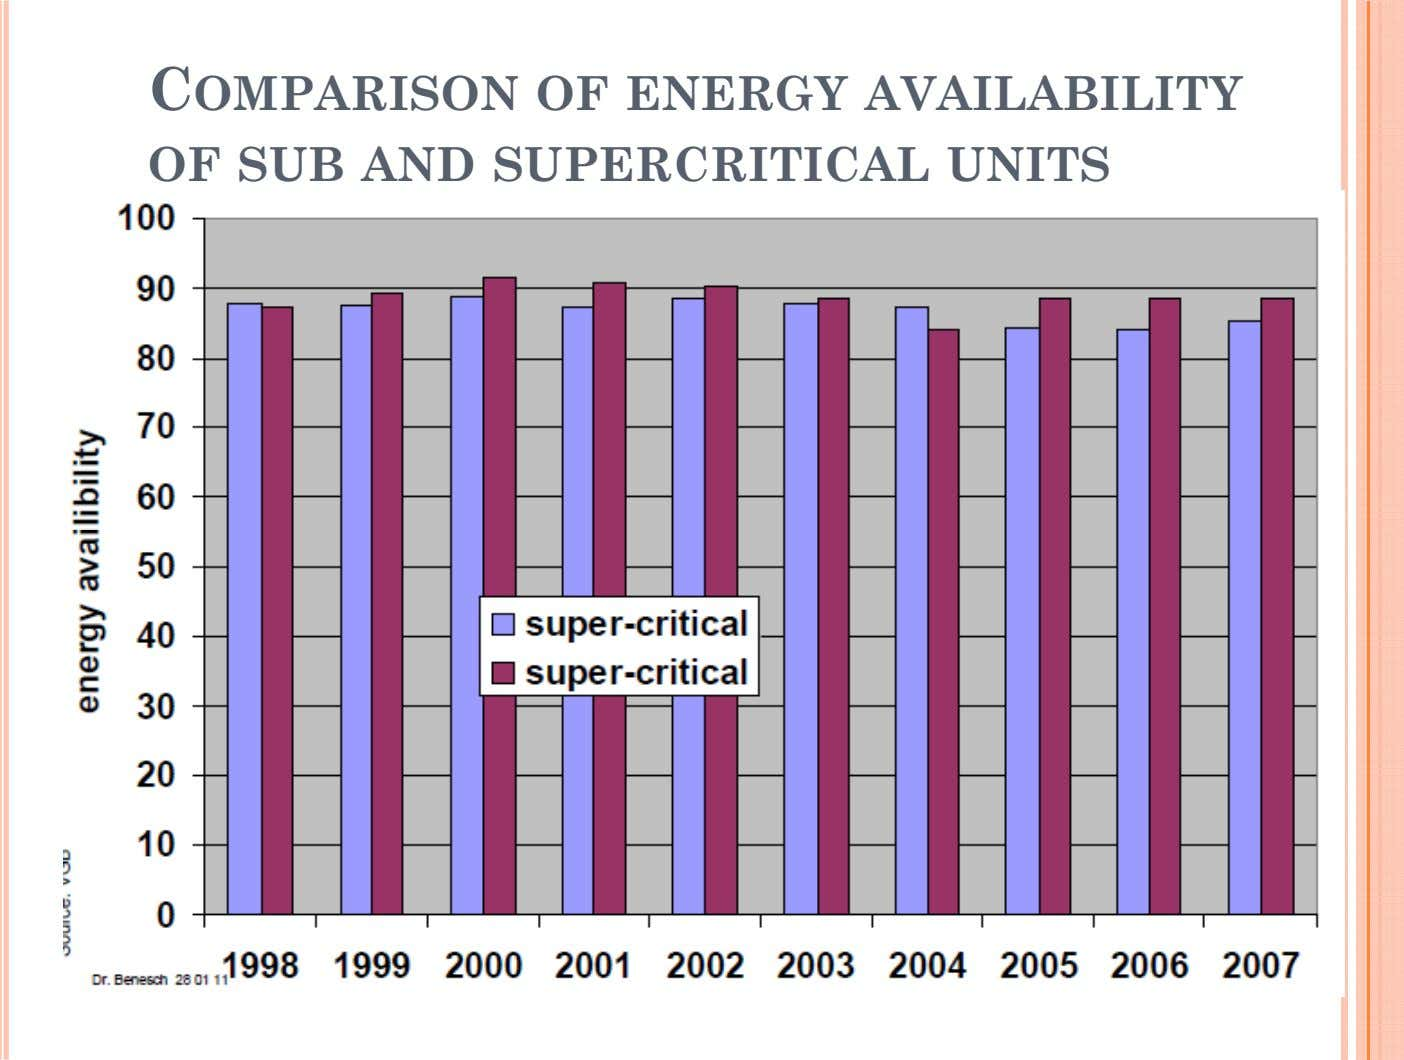 COMPARISON OF ENERGY AVAILABILITY OF SUB AND SUPERCRITICAL UNITS